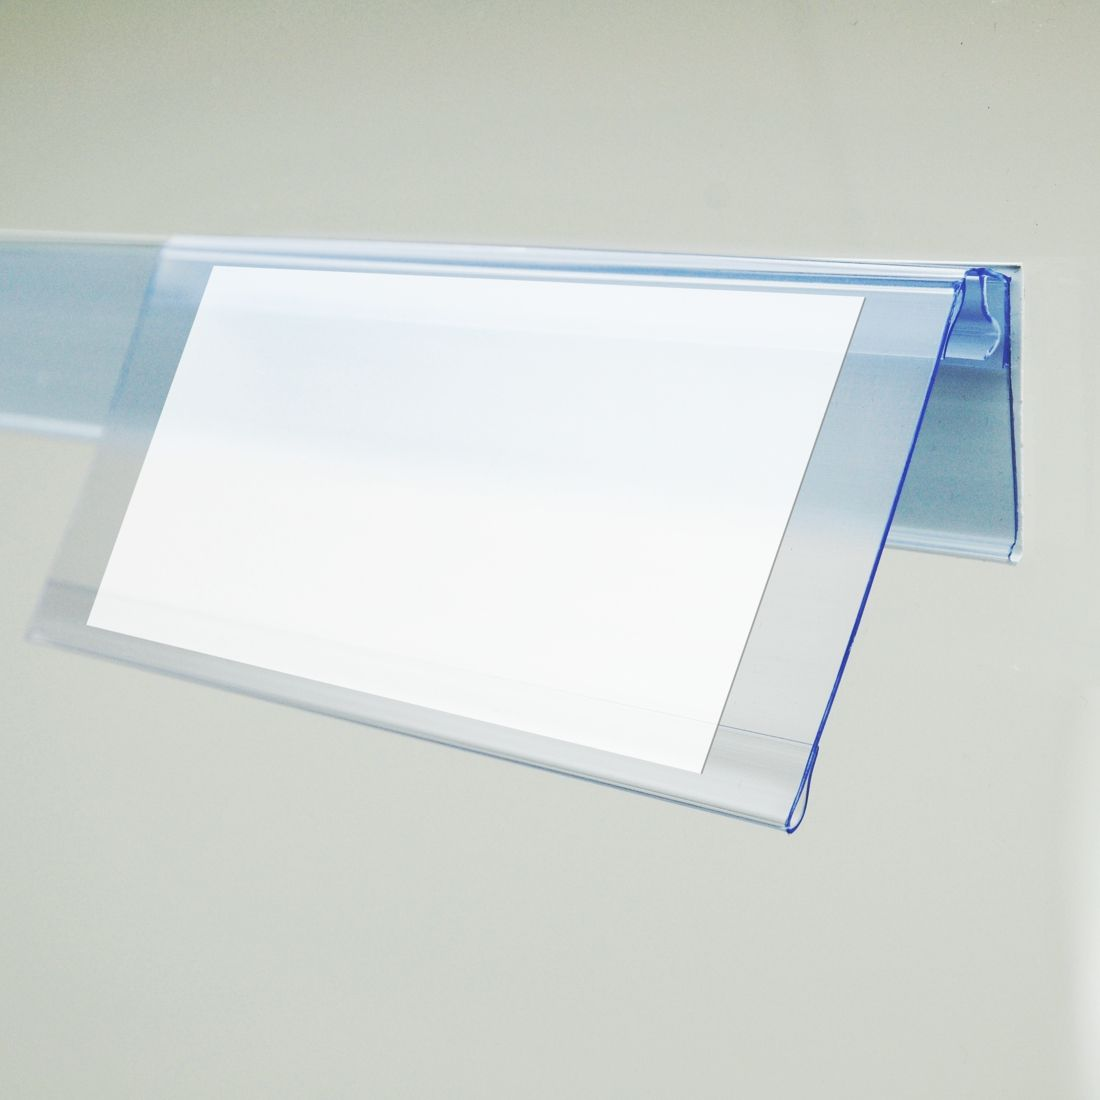 hinged shelf talkers for data strip